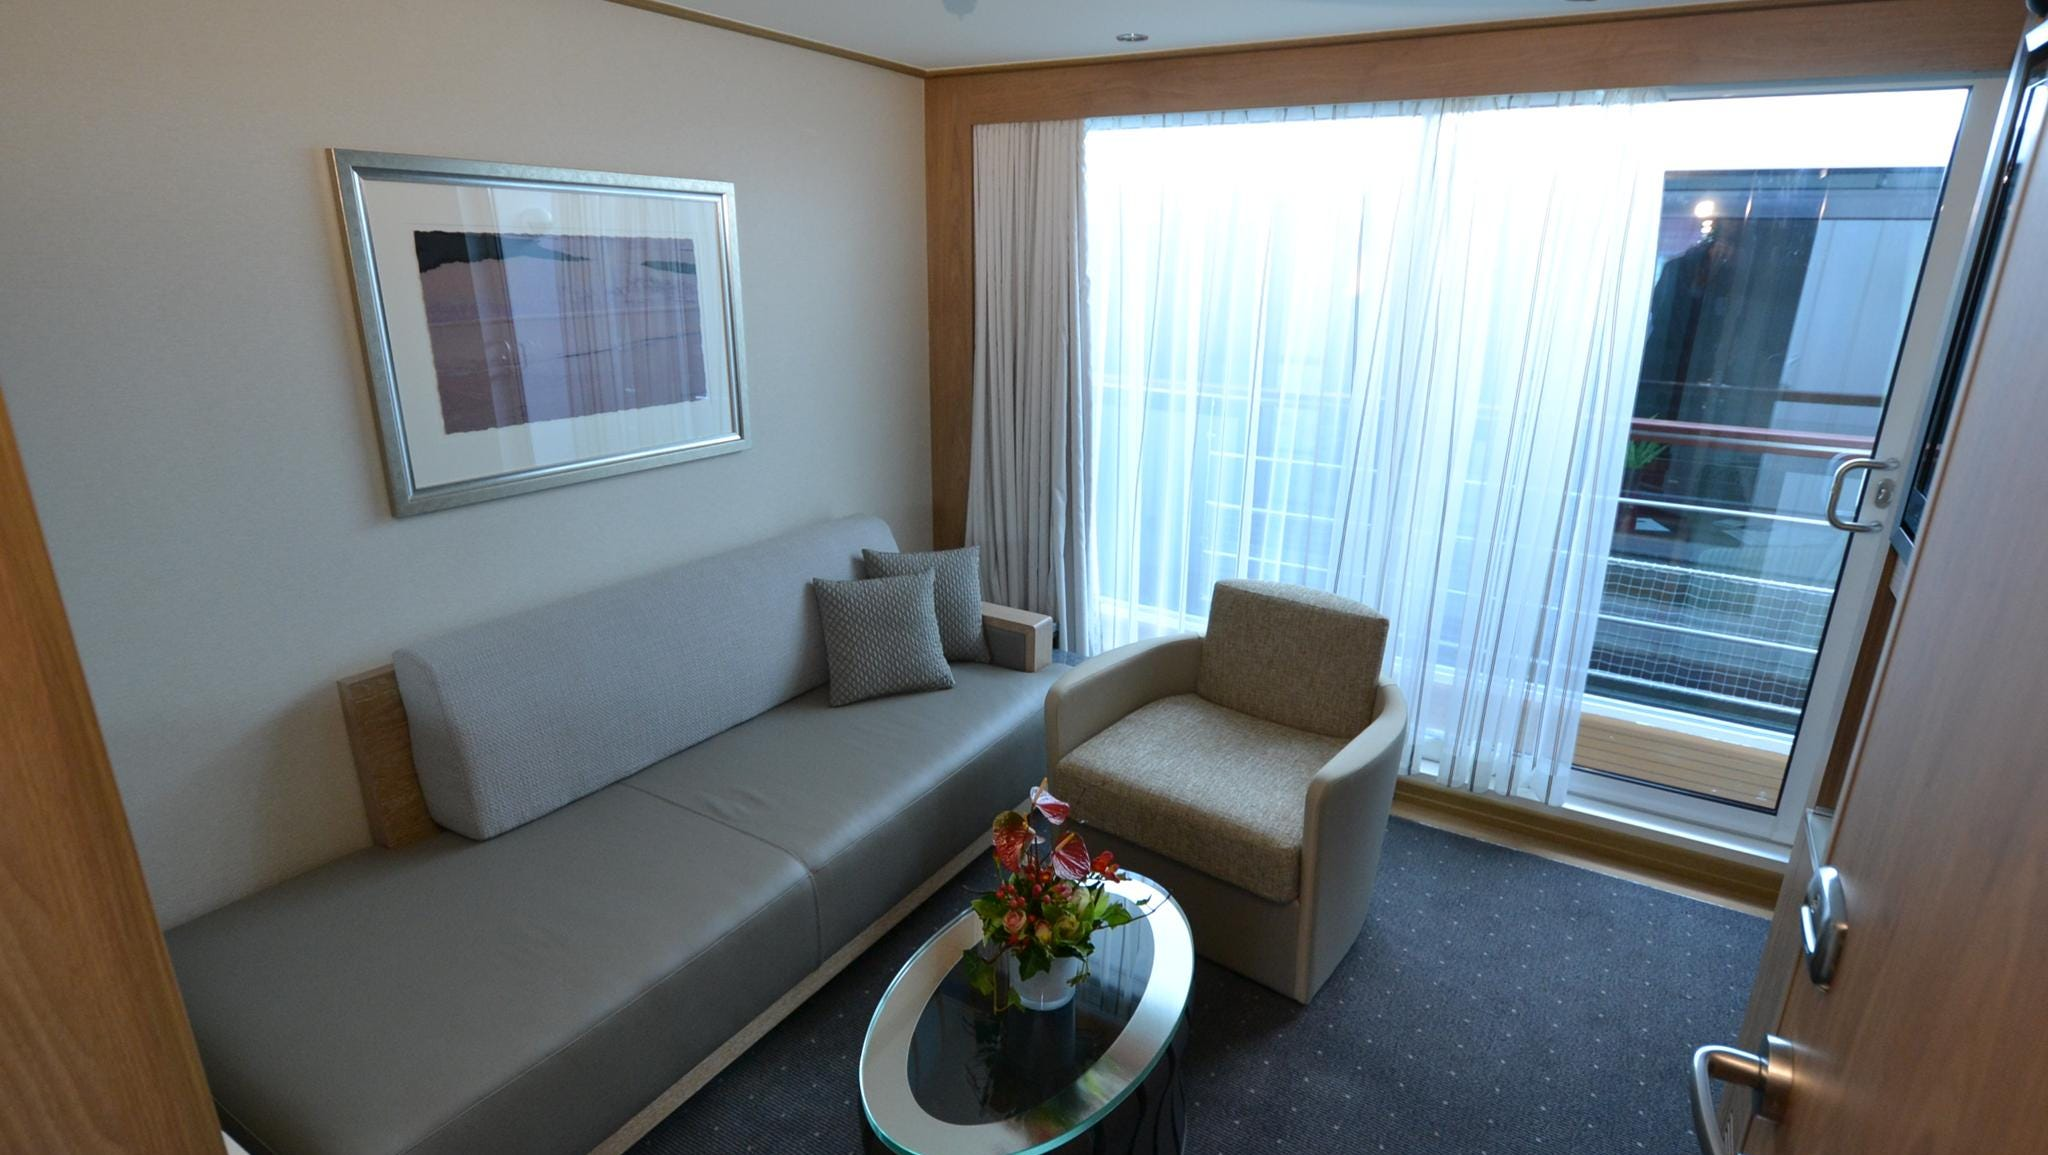 Veranda Suites feature a sitting room with wall-to-wall sliding glass doors overlooking a balcony as well as a connected bedroom.